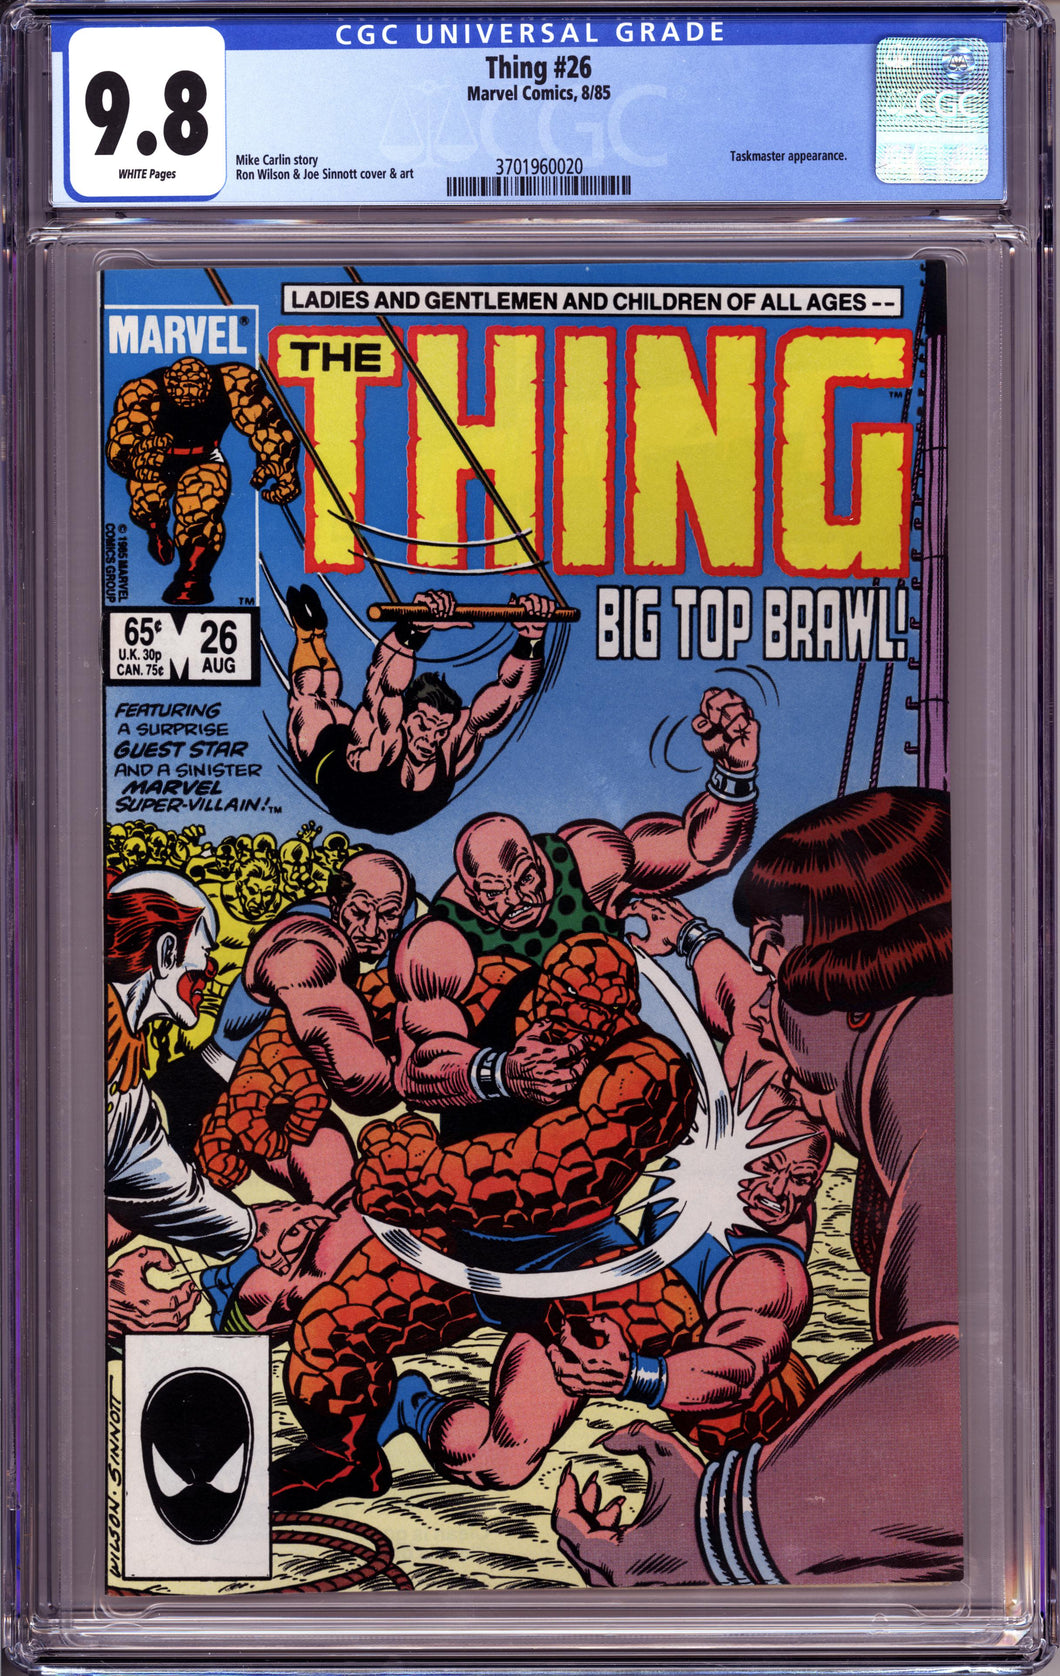 THE THING #26 CGC 9.8 NM/MT WHITE PGS EARLY TASKMASTER APPEARANCE (MARVEL COMICS 1985)